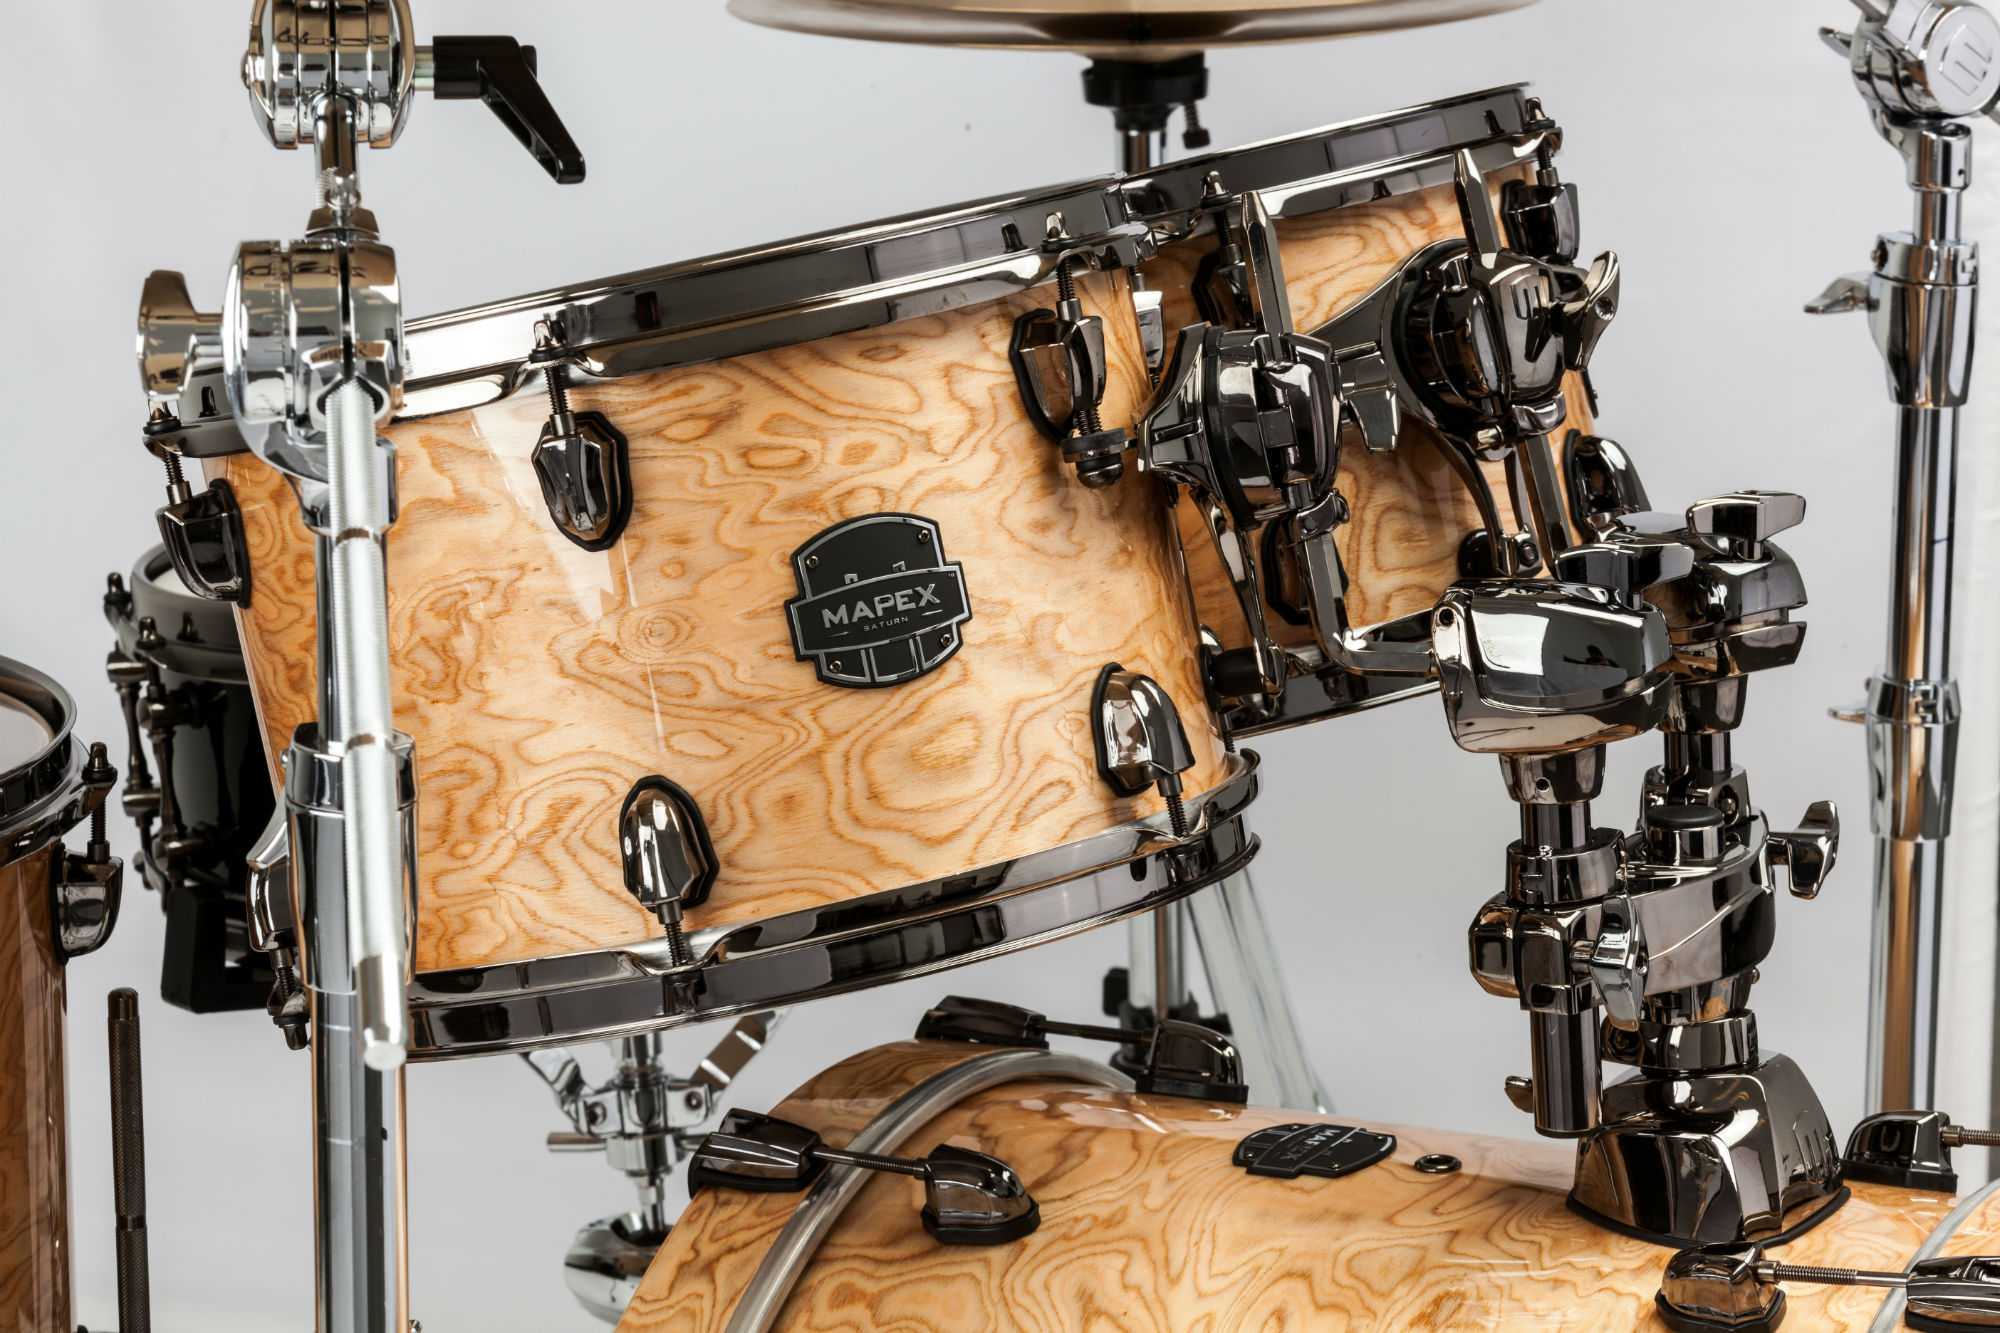 Mapex Saturn V MH Exotic Fusion 4-piece shell pack with SONIClear Edge - SV504XBMXN - Natural Maple Burl